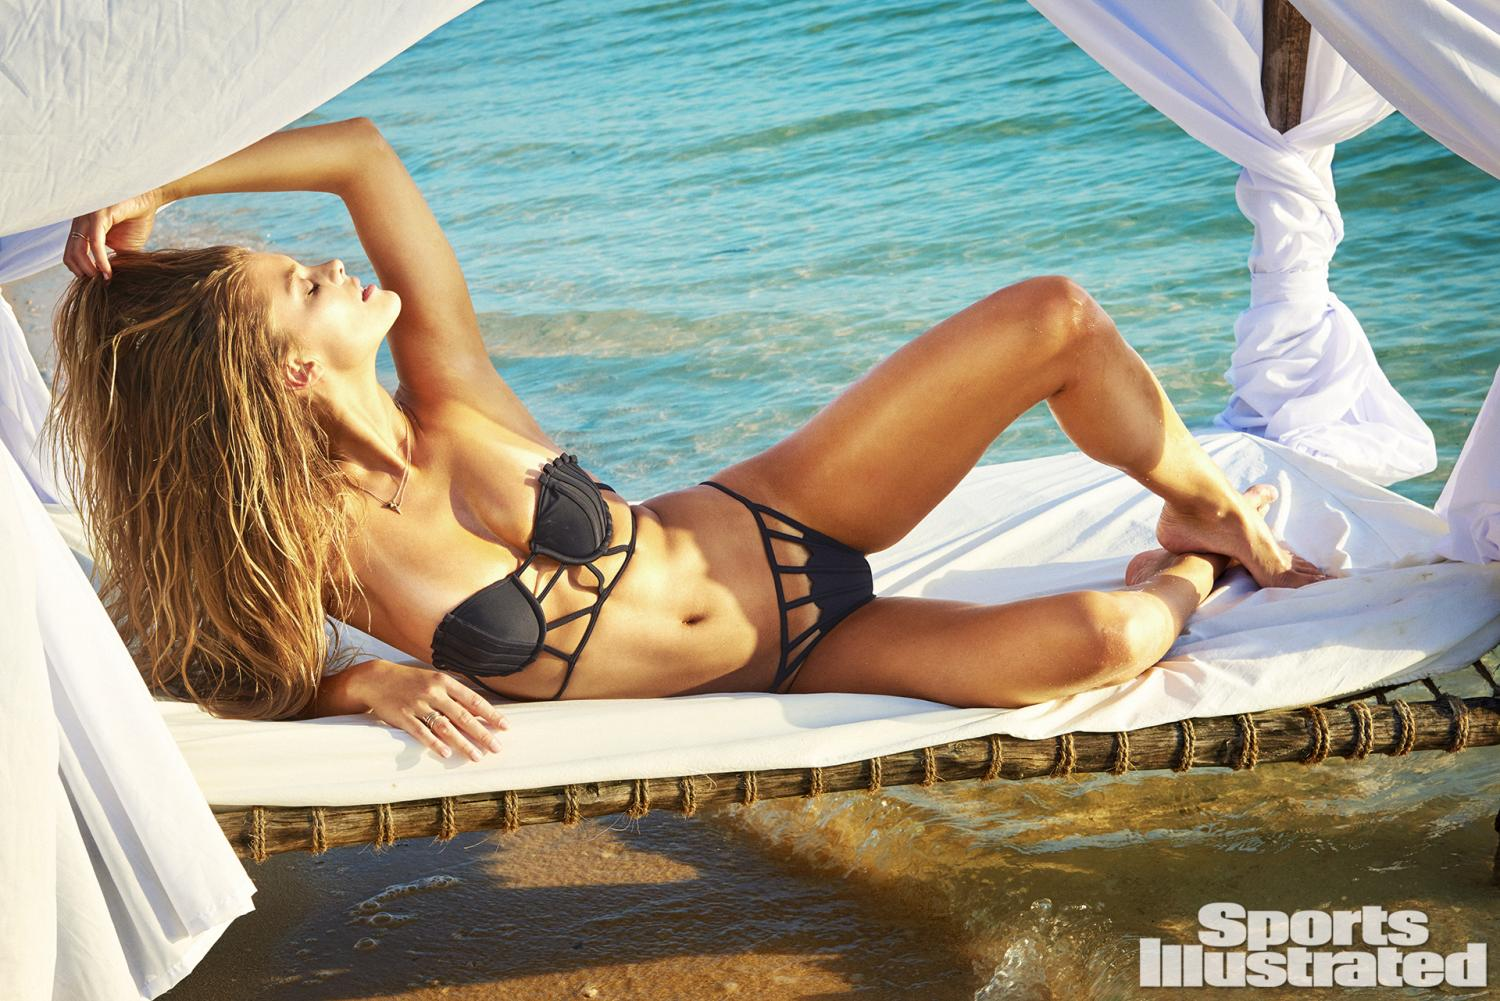 Nina Agdal was photographed by Ruven Afanador in Zanzibar. Swimsuit by Lee + Lani.